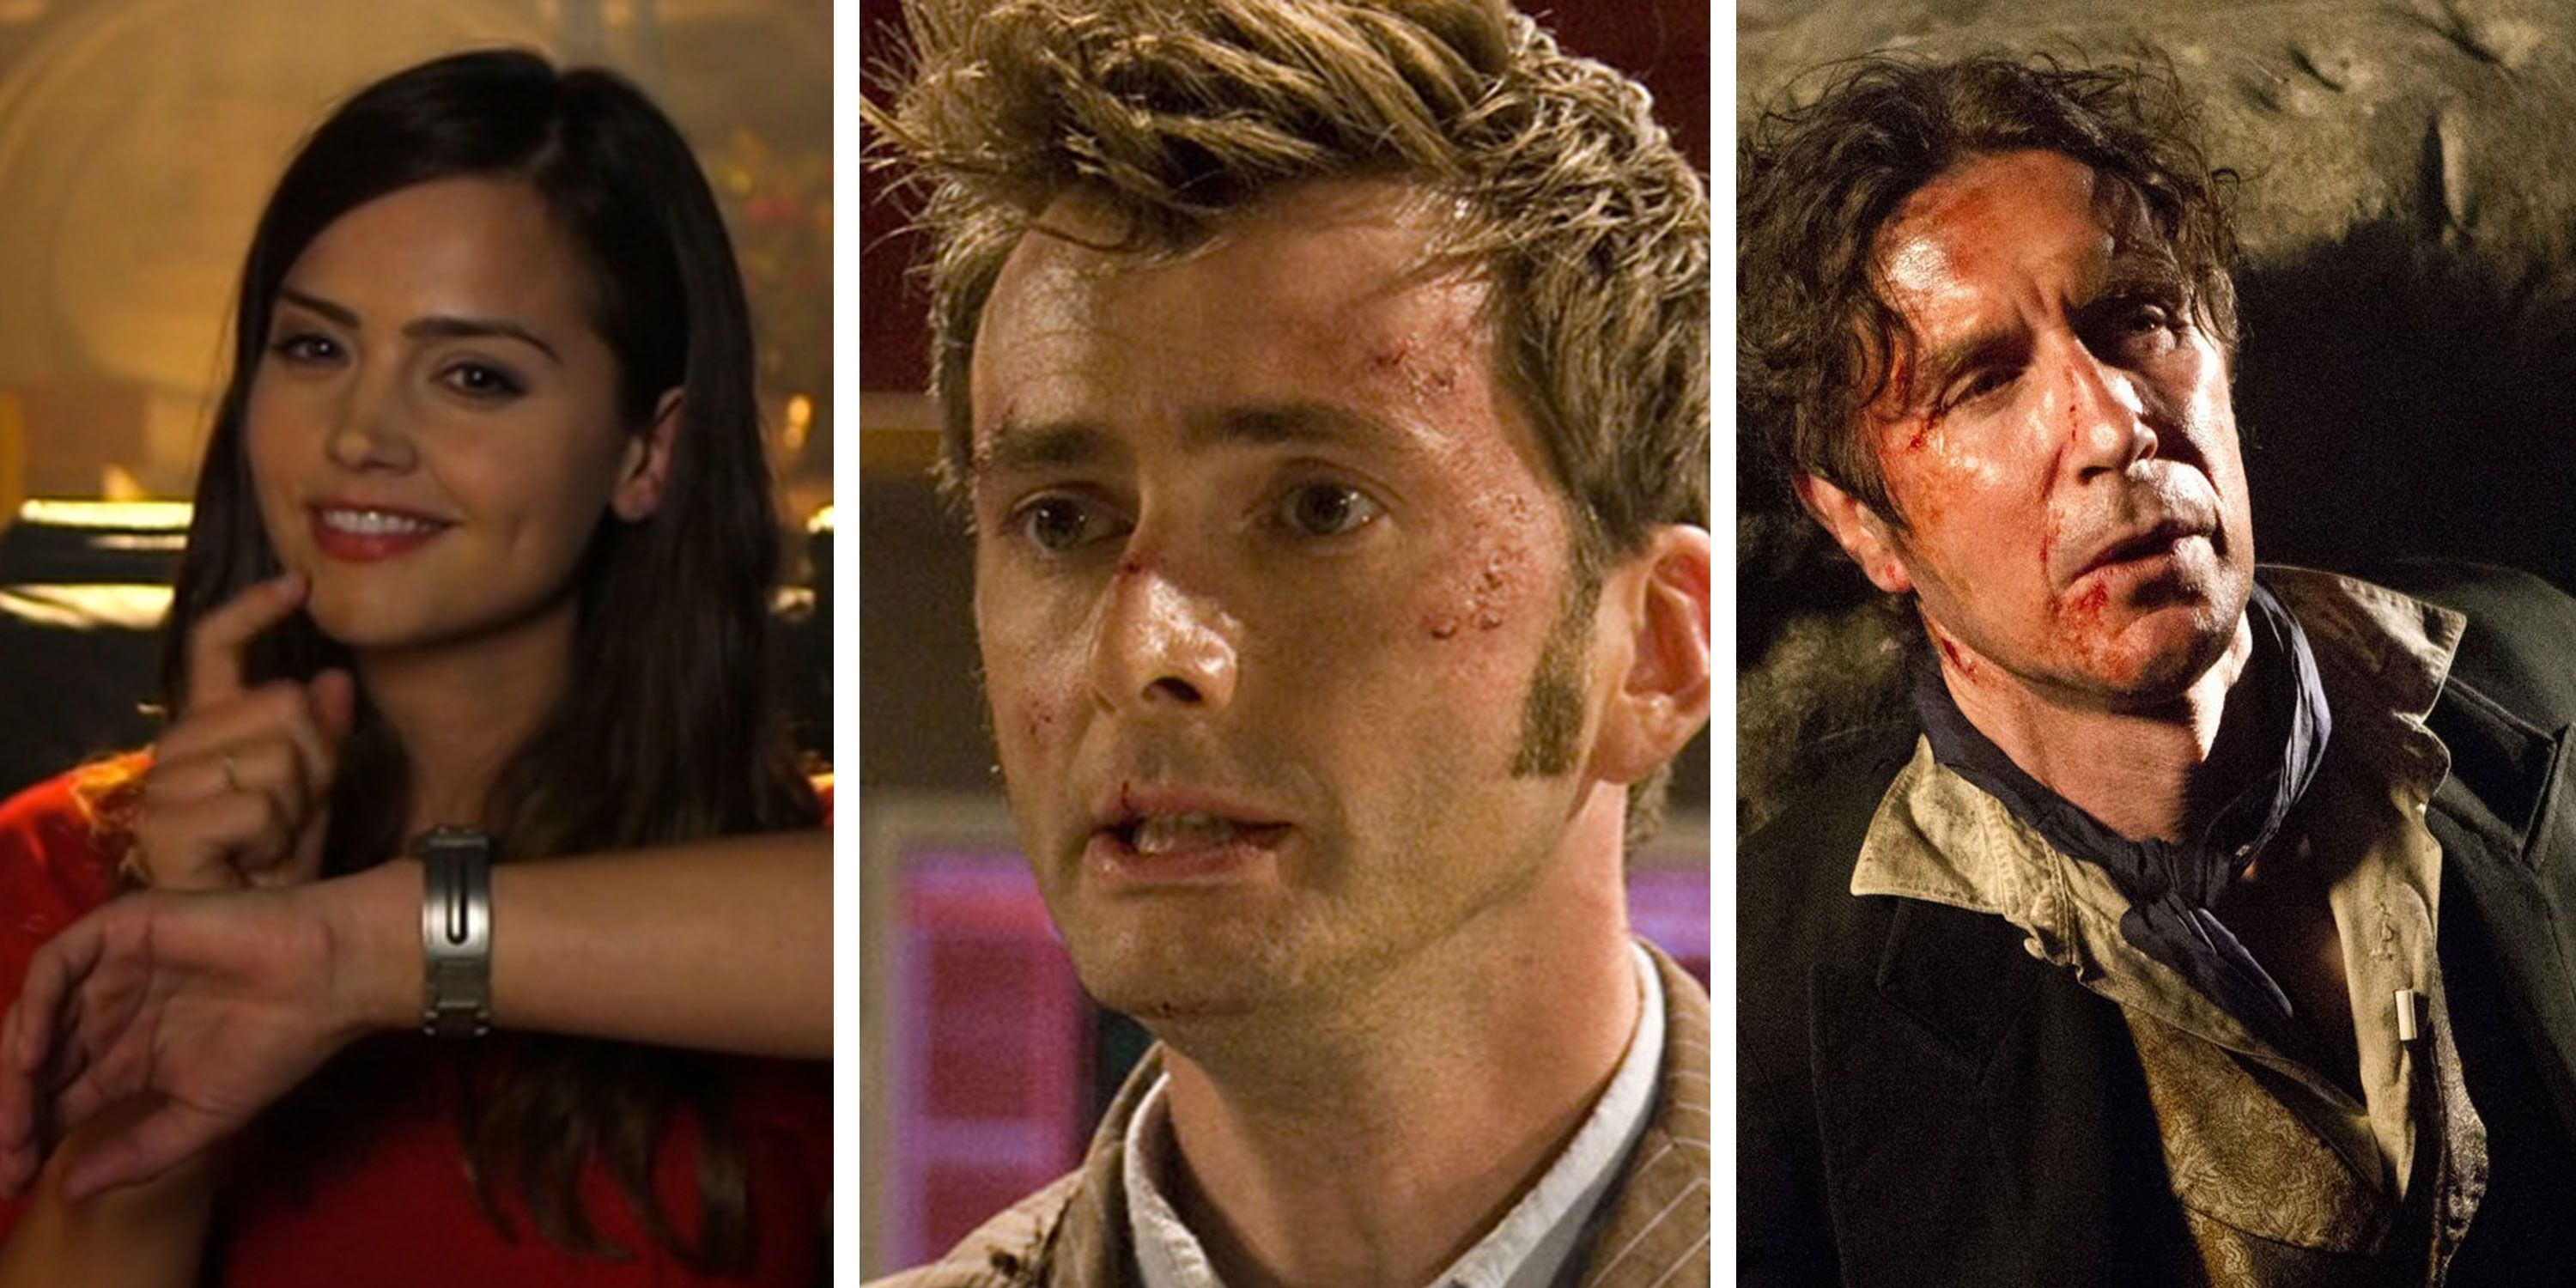 Jenna Coleman as Oswin in the episode 'Asylum of the Daleks', Paul McGann in 'The Night of the Doctor' and David Tennant in 'The End of Time'